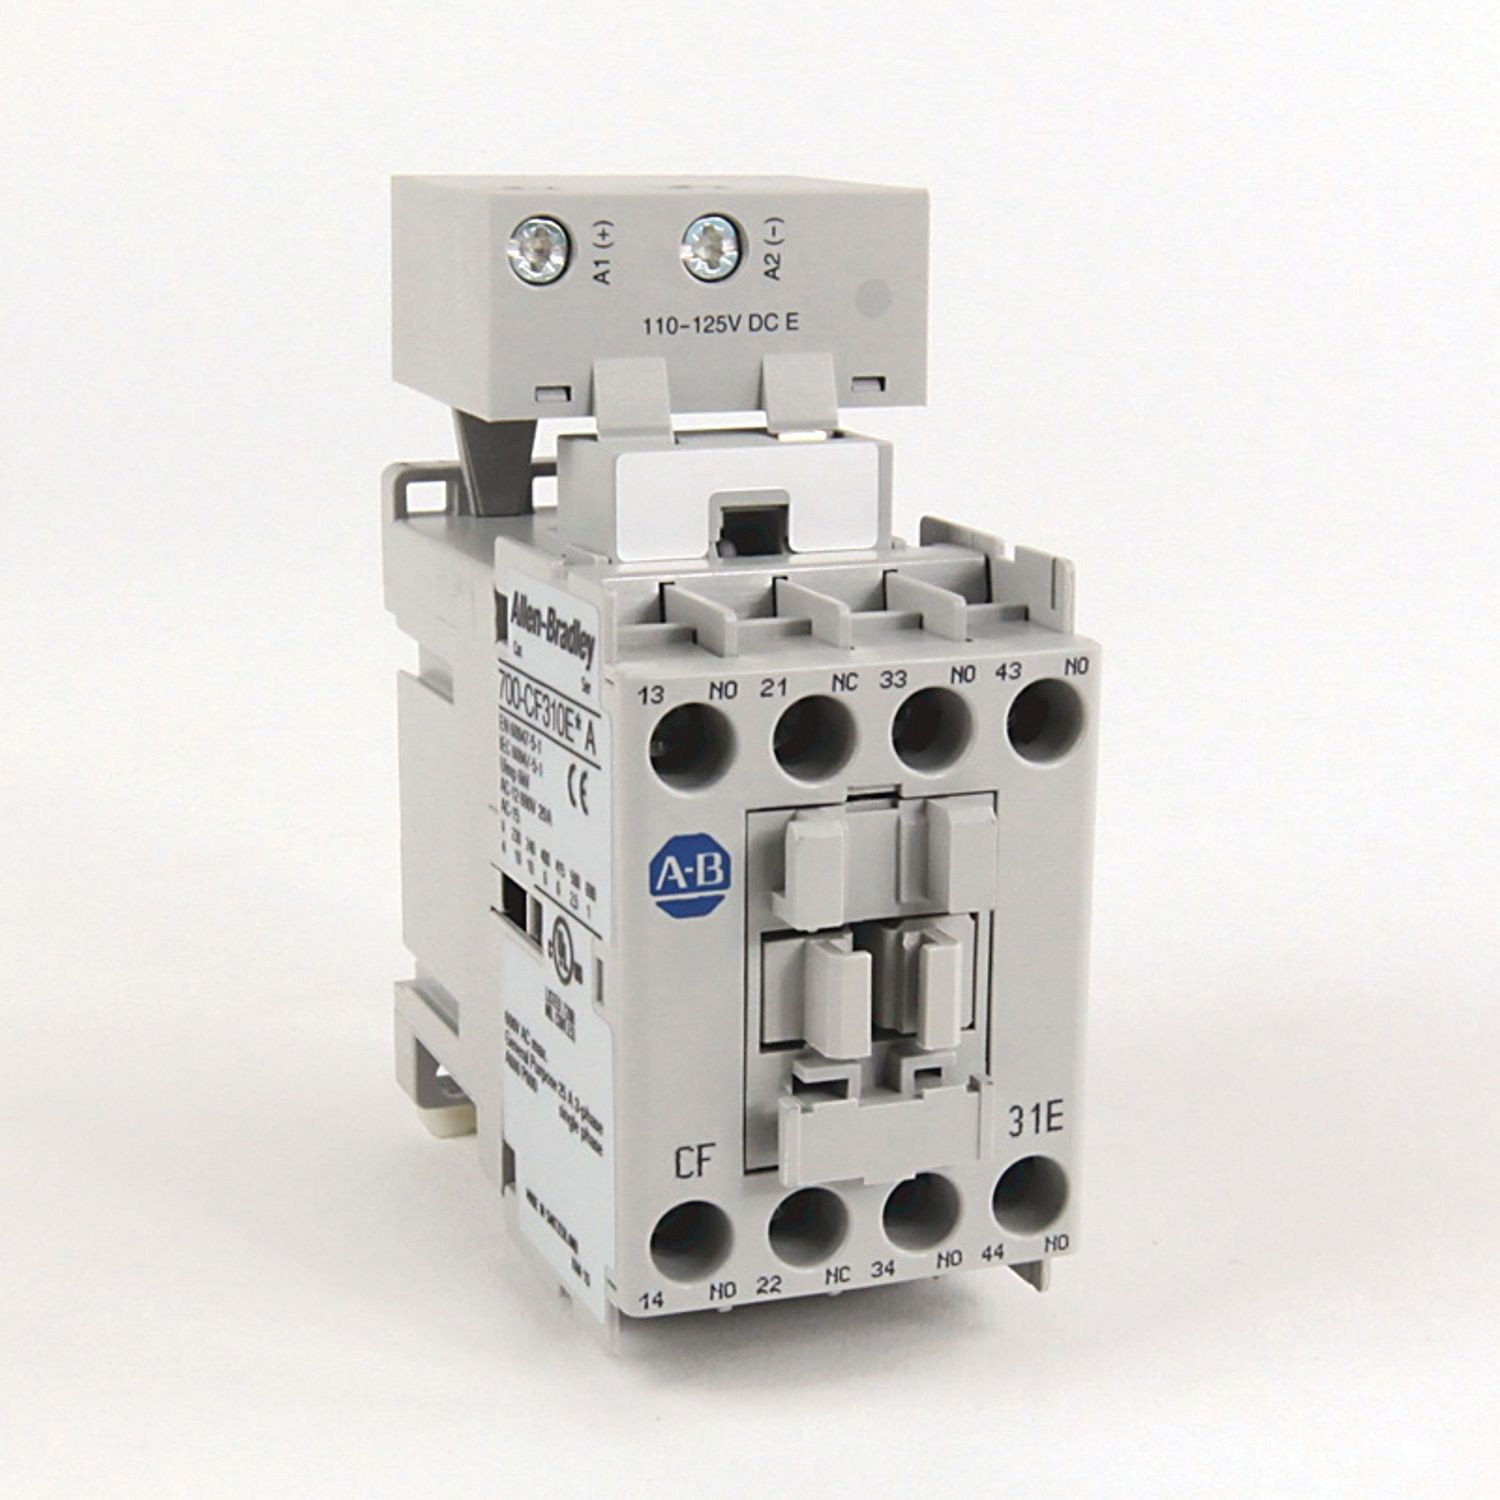 700 Cf Iec Control Relay Screw Terminals F Standard Contacts 3 With No And Nc 1 240v 60hz